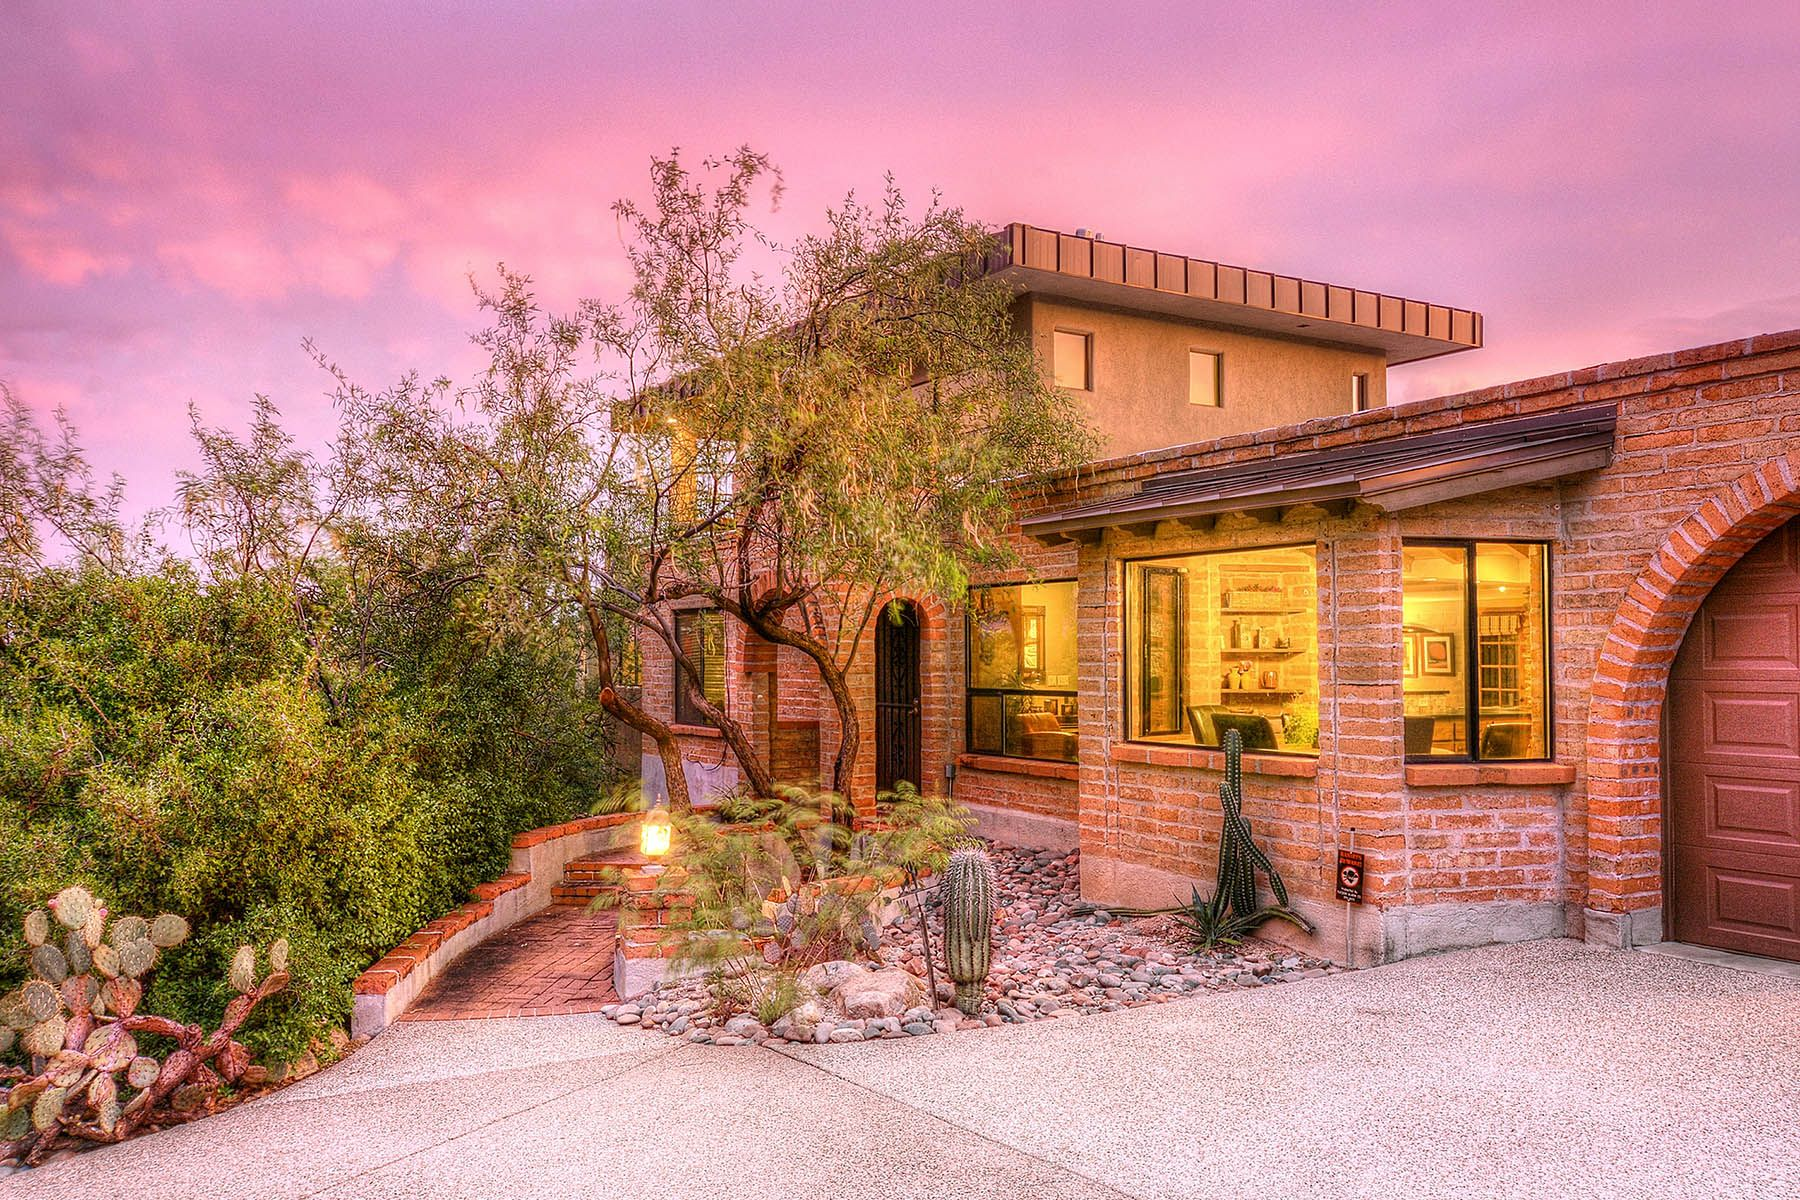 Single Family Home for Sale at Outstanding, Meticulously Maintained and Remodeled 4320 E Coronado Drive, Tucson, Arizona, 85718 United States